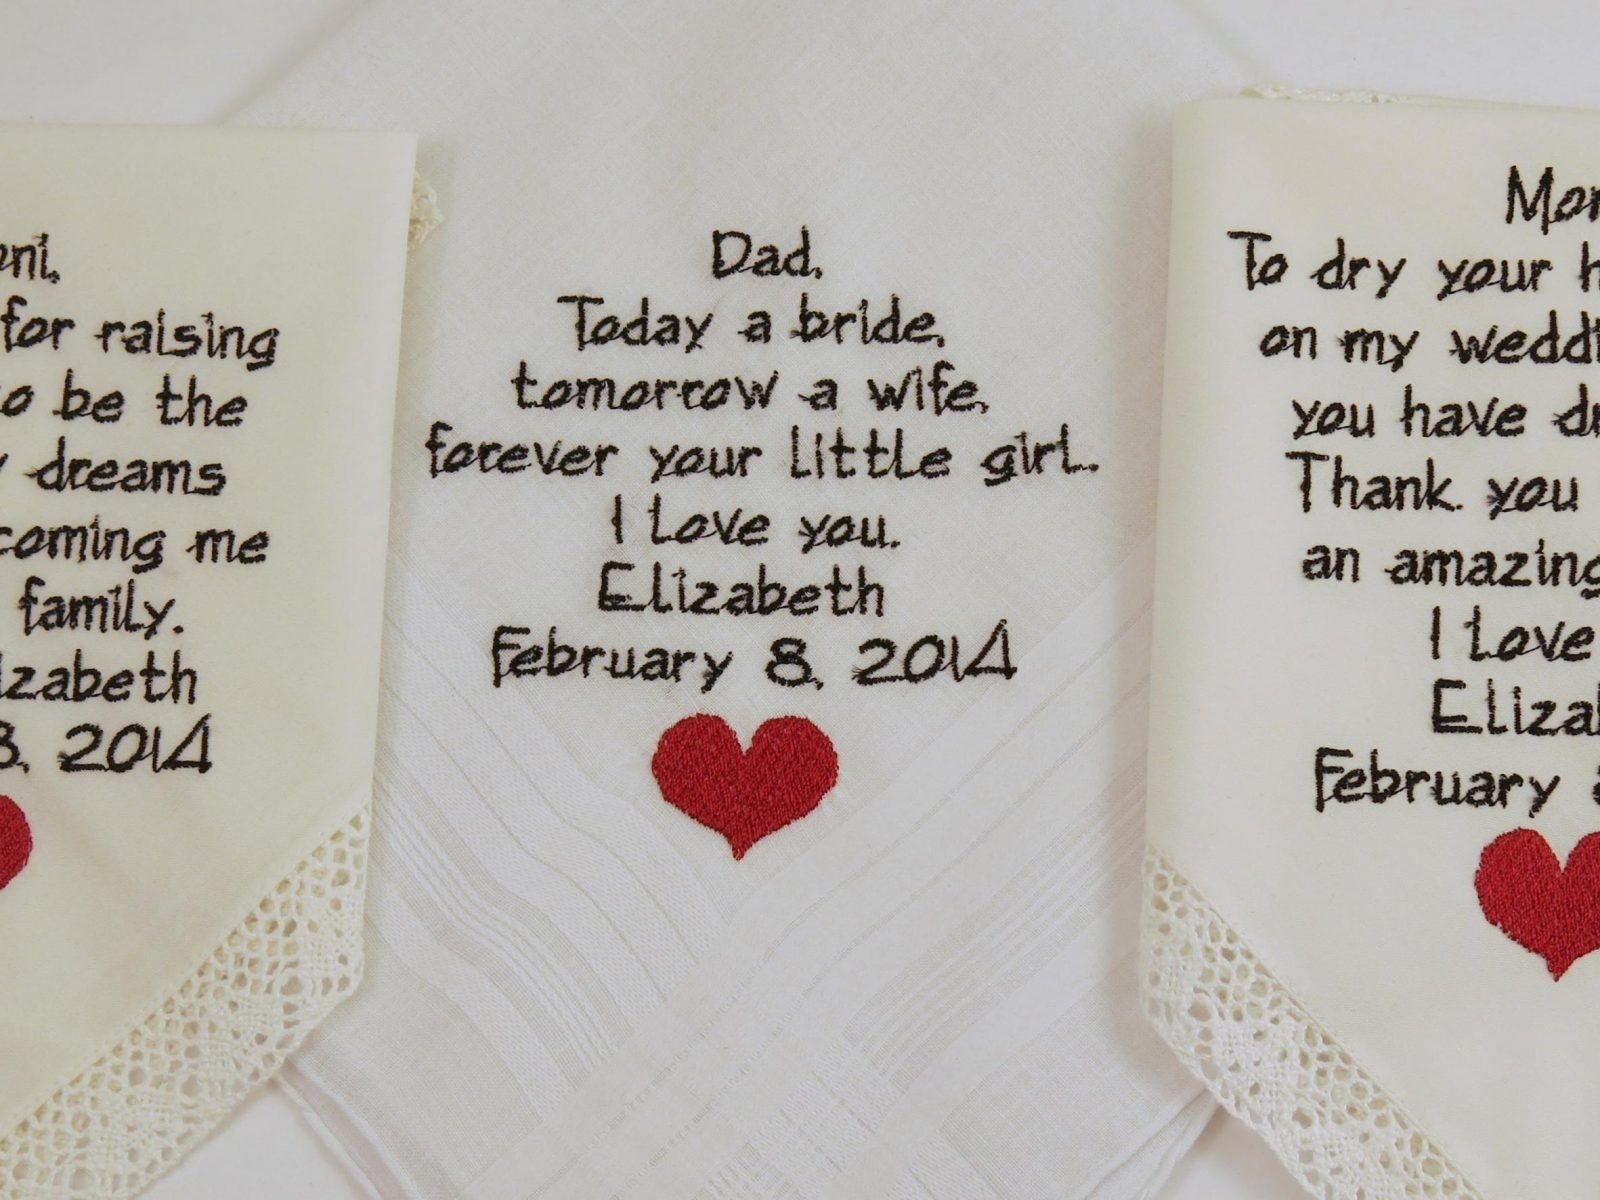 10 Famous Mother In Law Gift Ideas wedding gift for mother in law ideas unforgettable marriage 2020